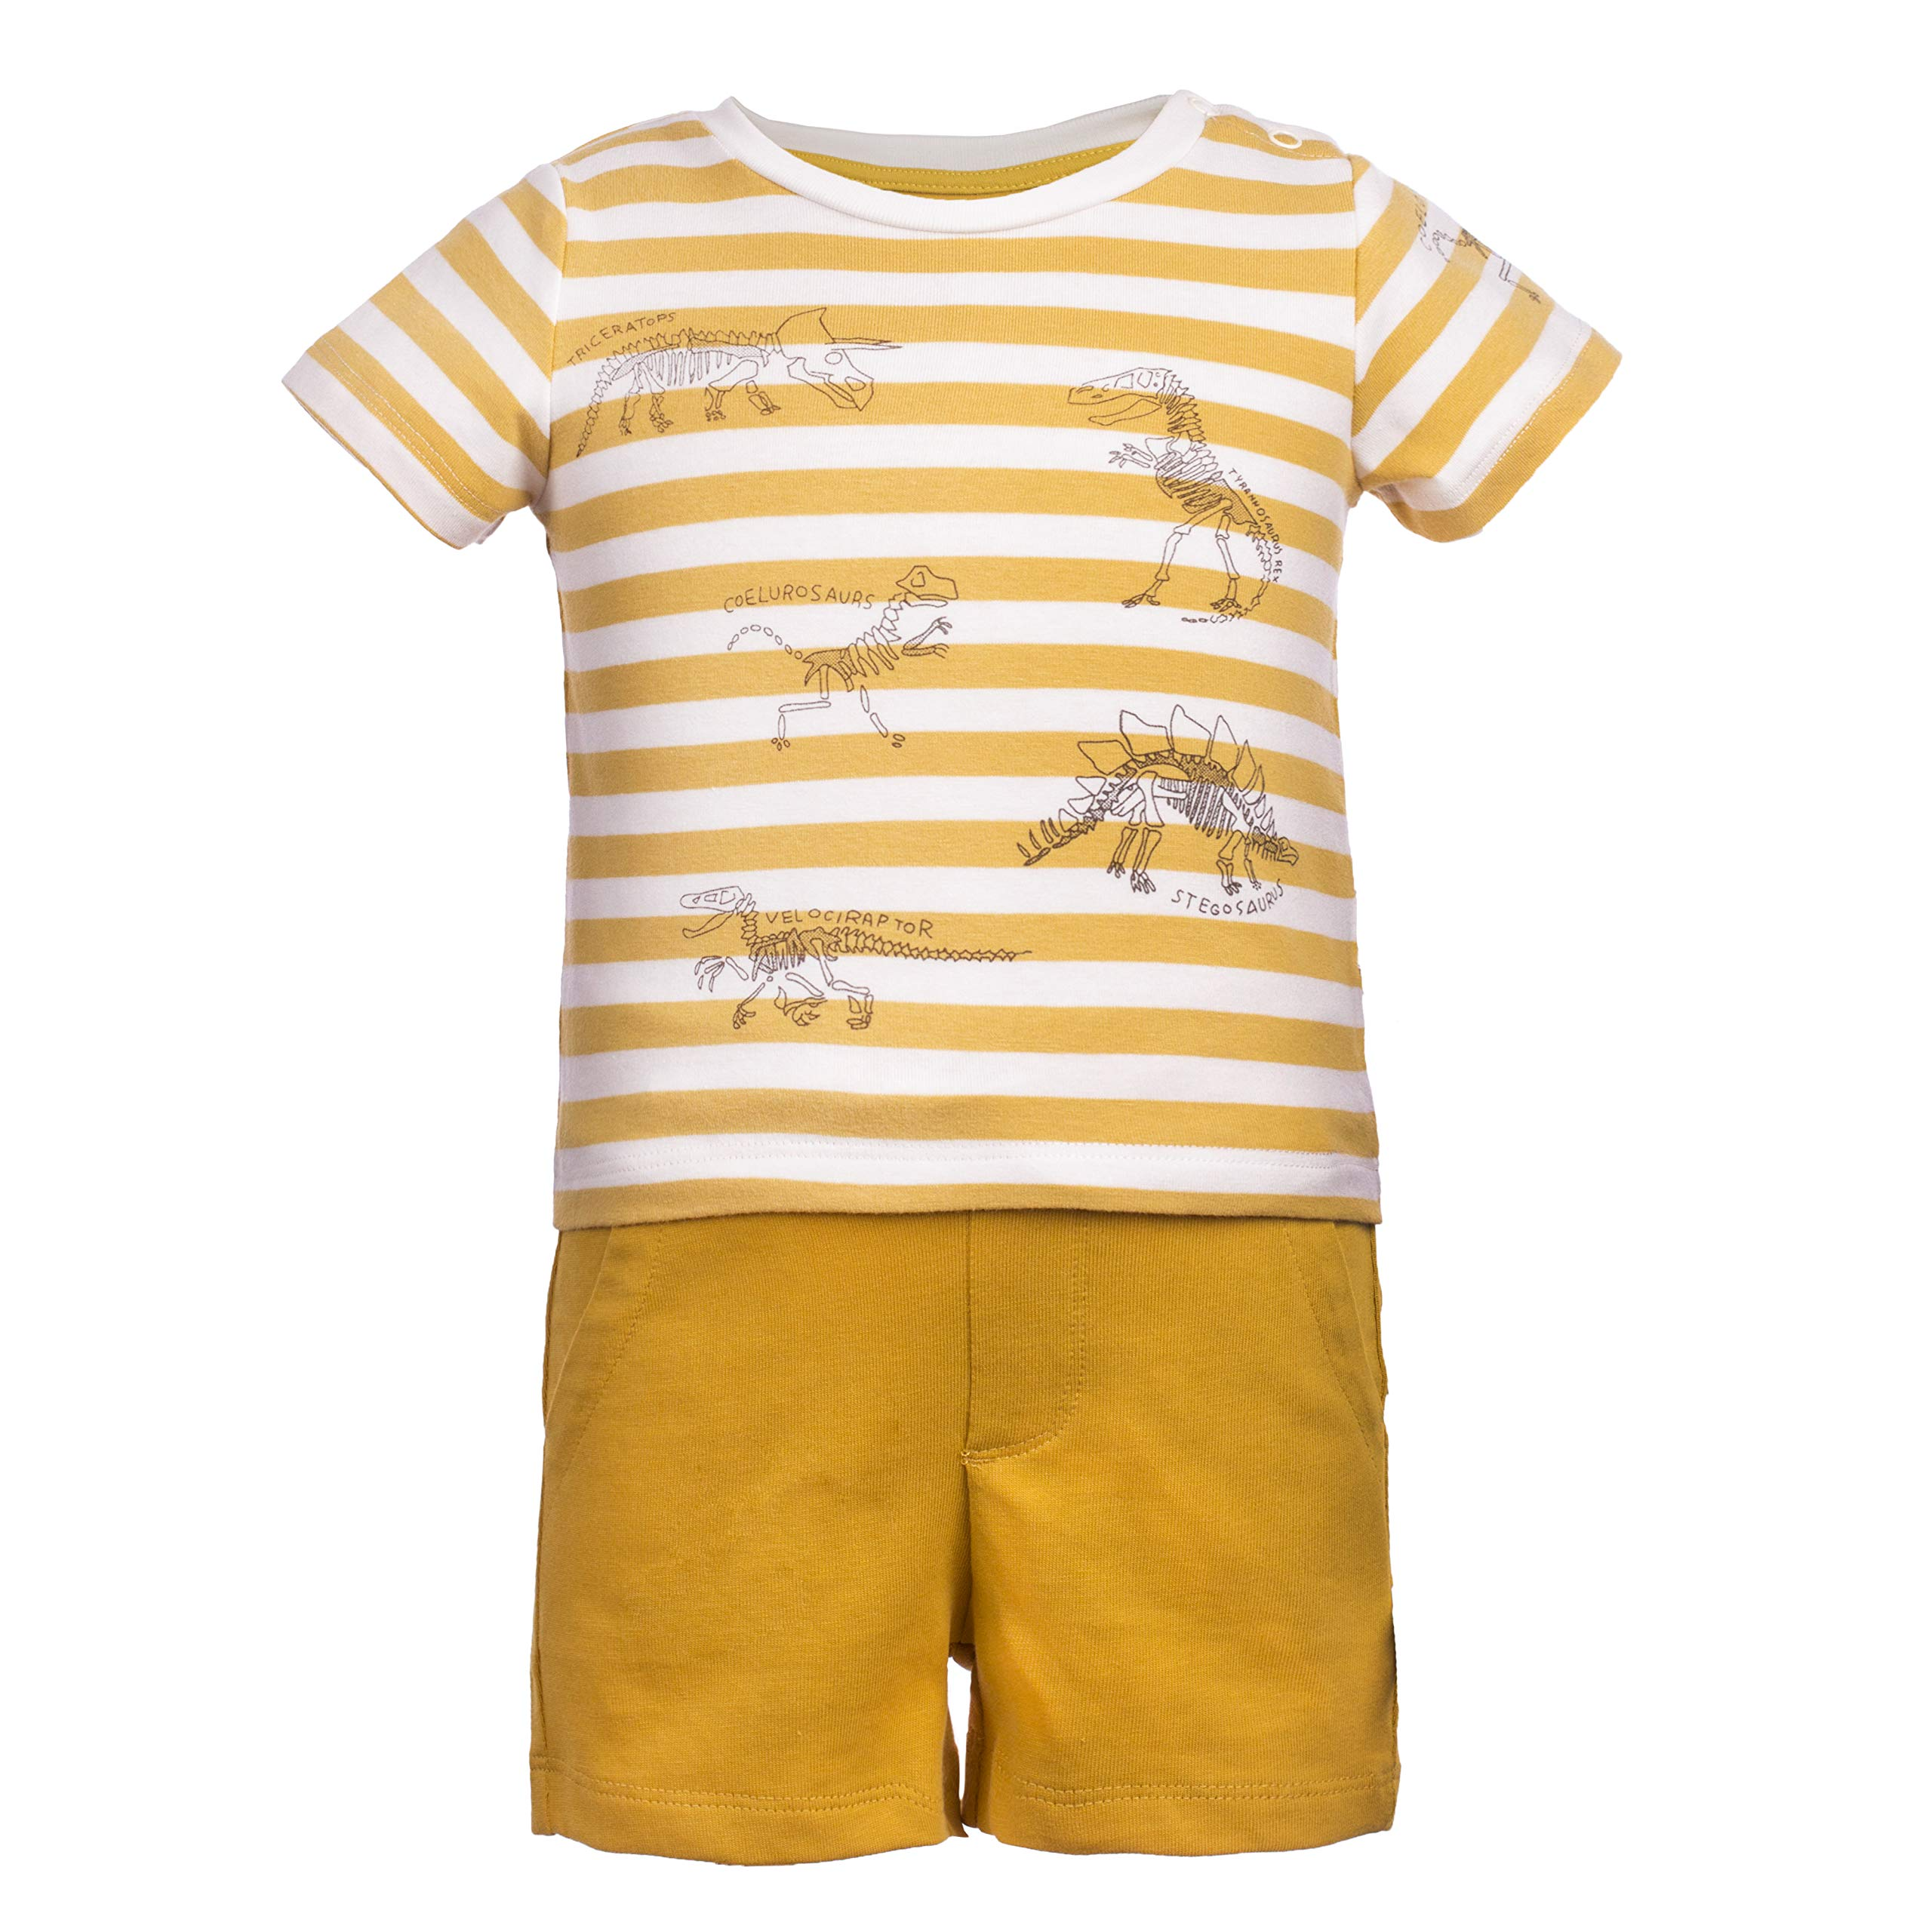 Toddler Baby Boys' Cotton Summer Outfit Set